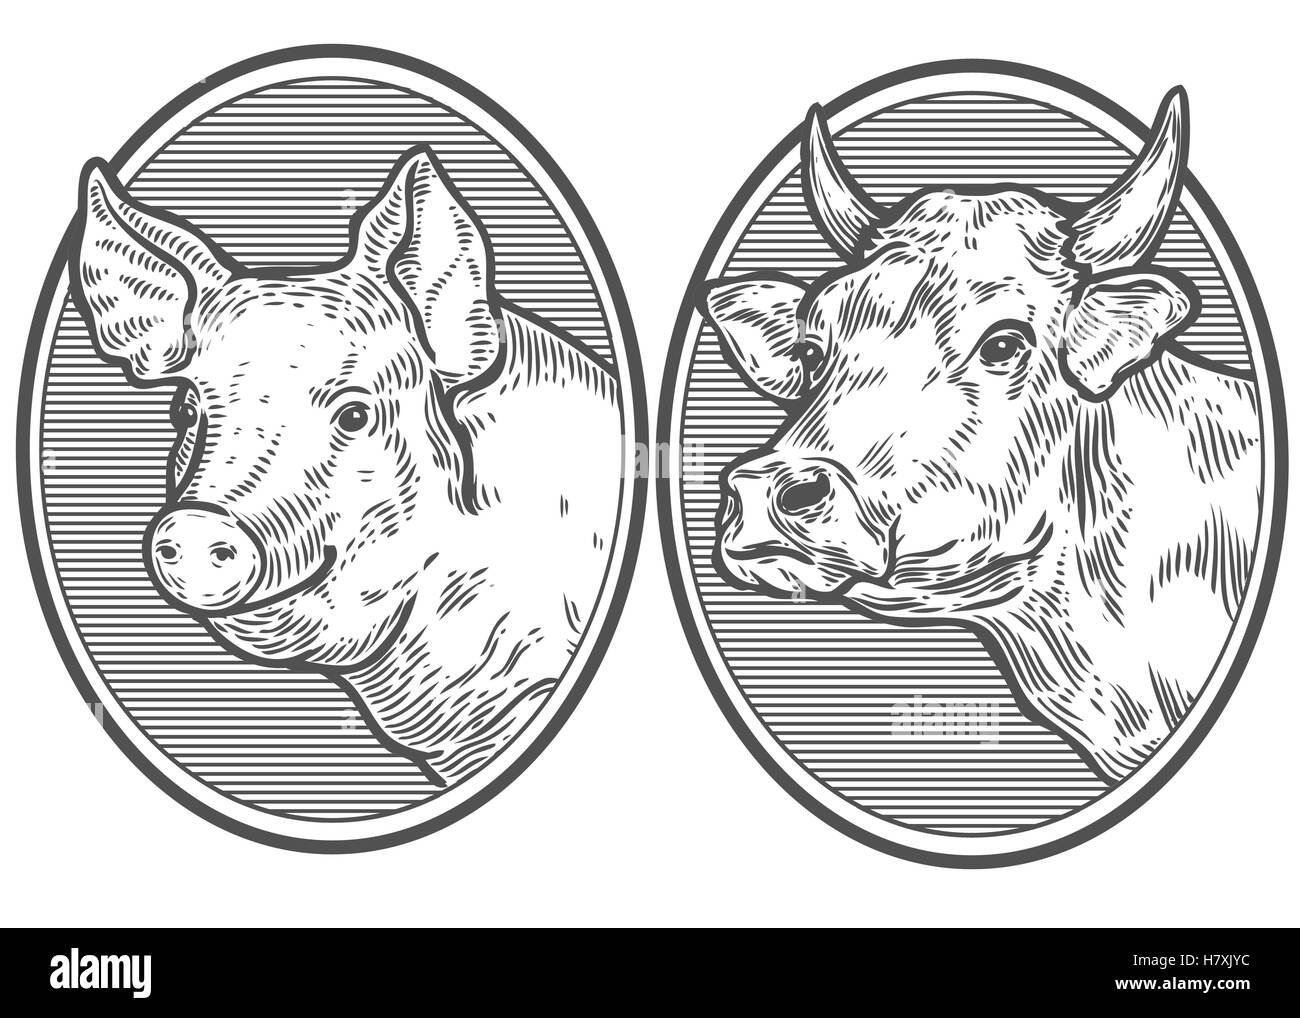 bcff467cfc1 Cow and pig head. Hand drawn sketch in a graphic style. Vintage vector  engraving